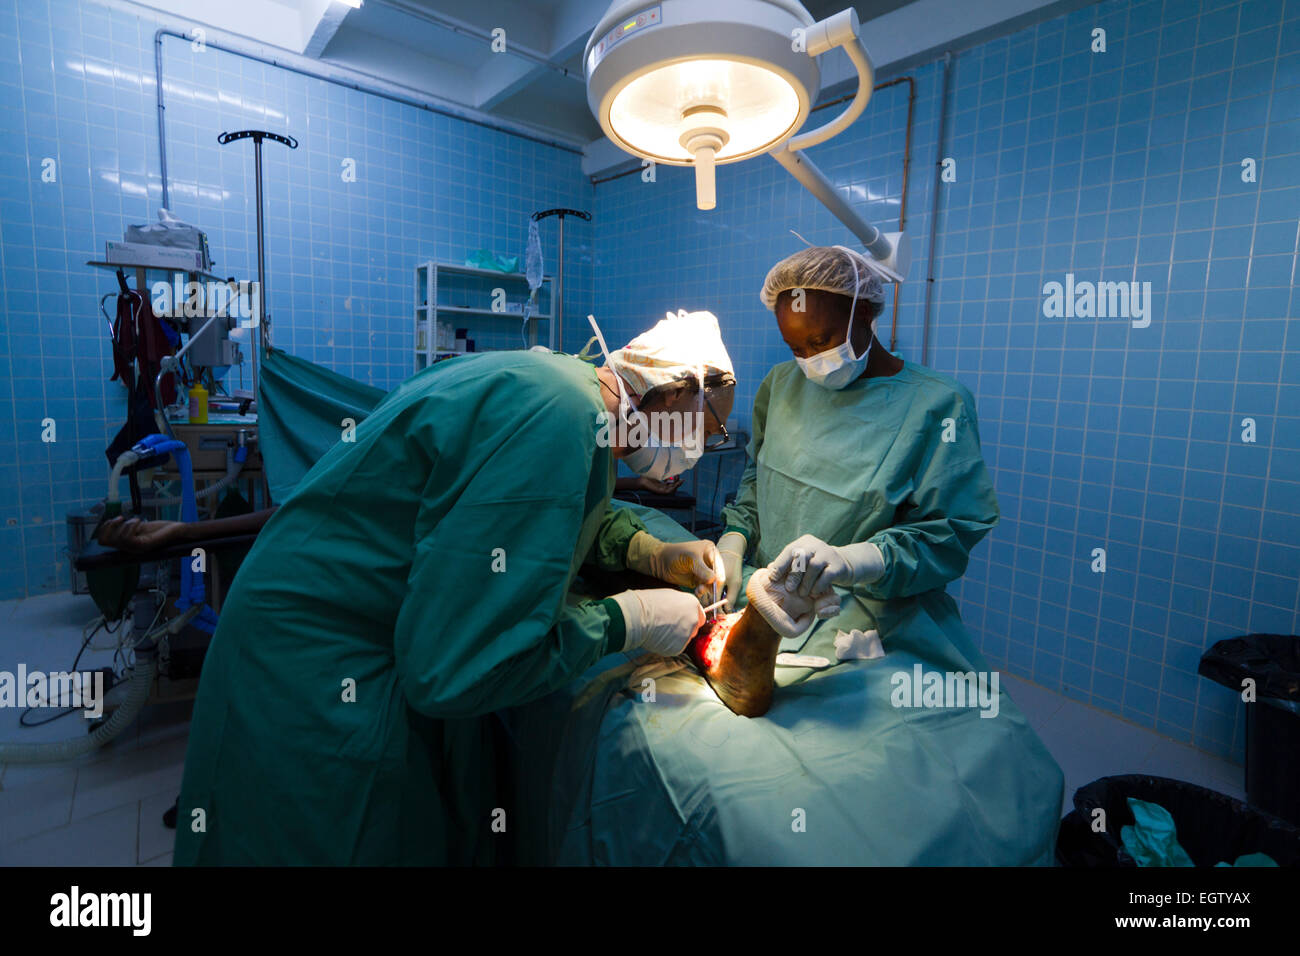 Surgical emergency project at the General Hospital MSF of Bangui ,Central African Republic ,Africa - Stock Image